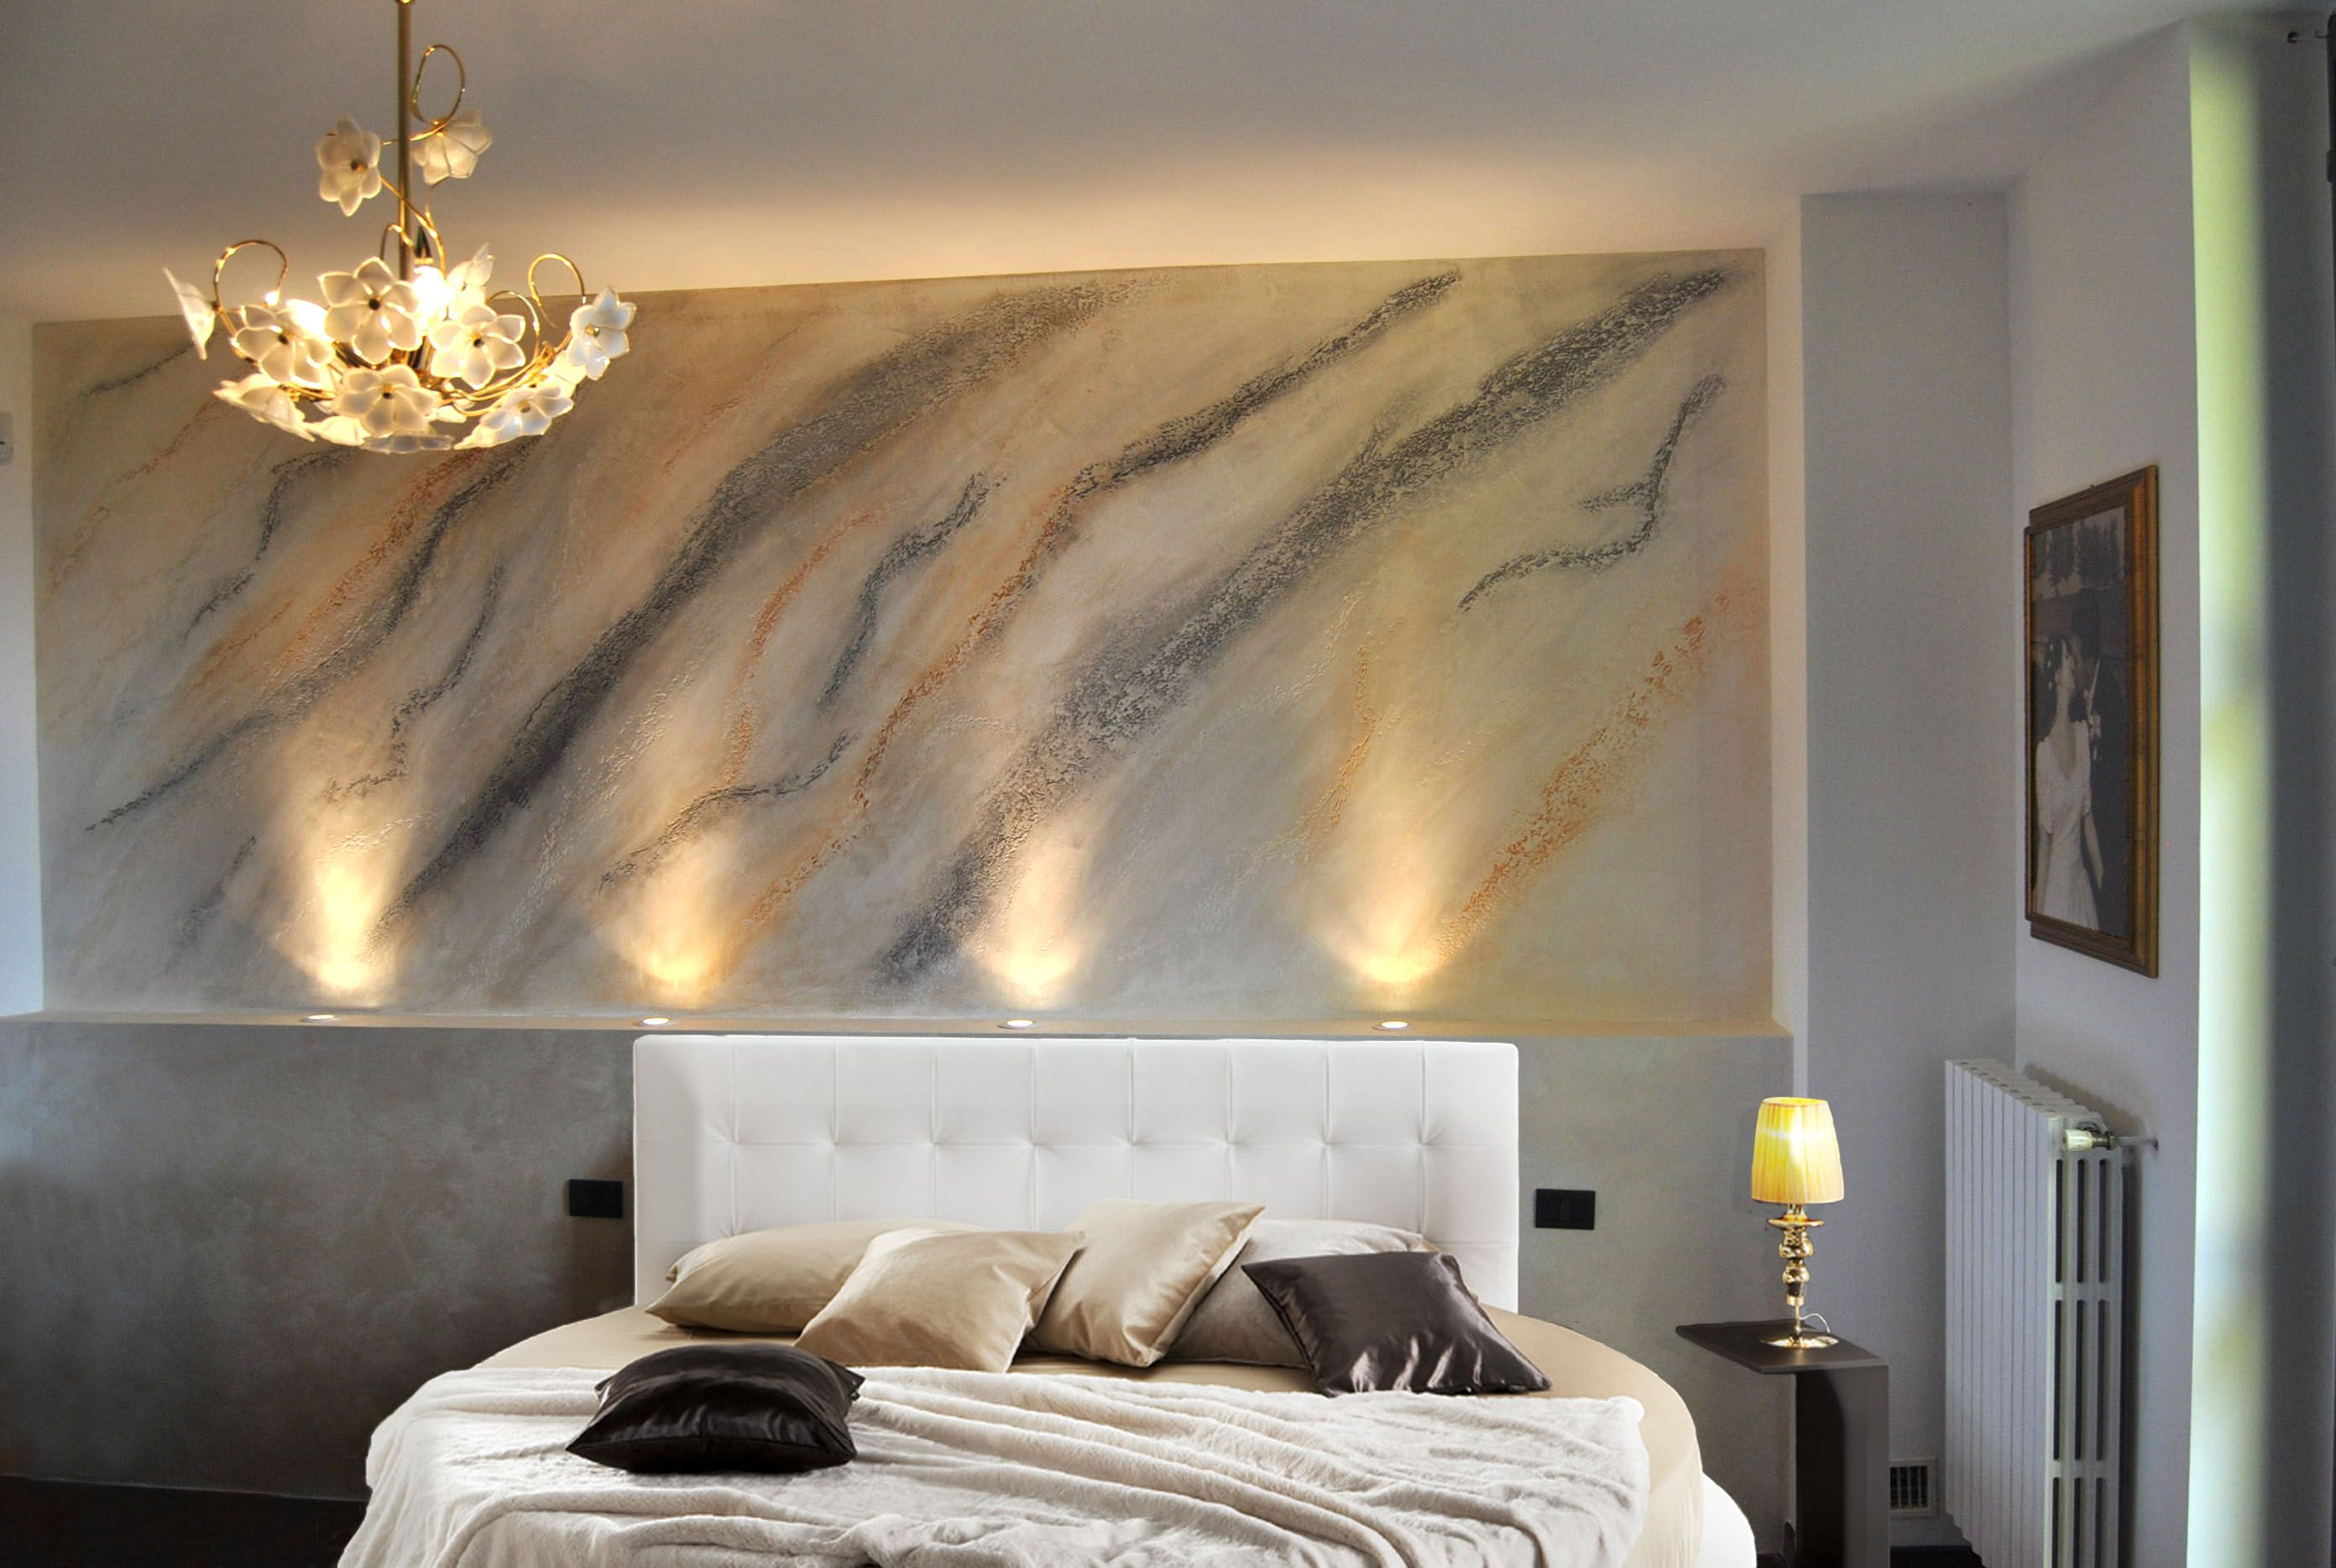 Pittura Oikos Travertino Istinto Decorative Paints T Paint Walls Travertine And Walls